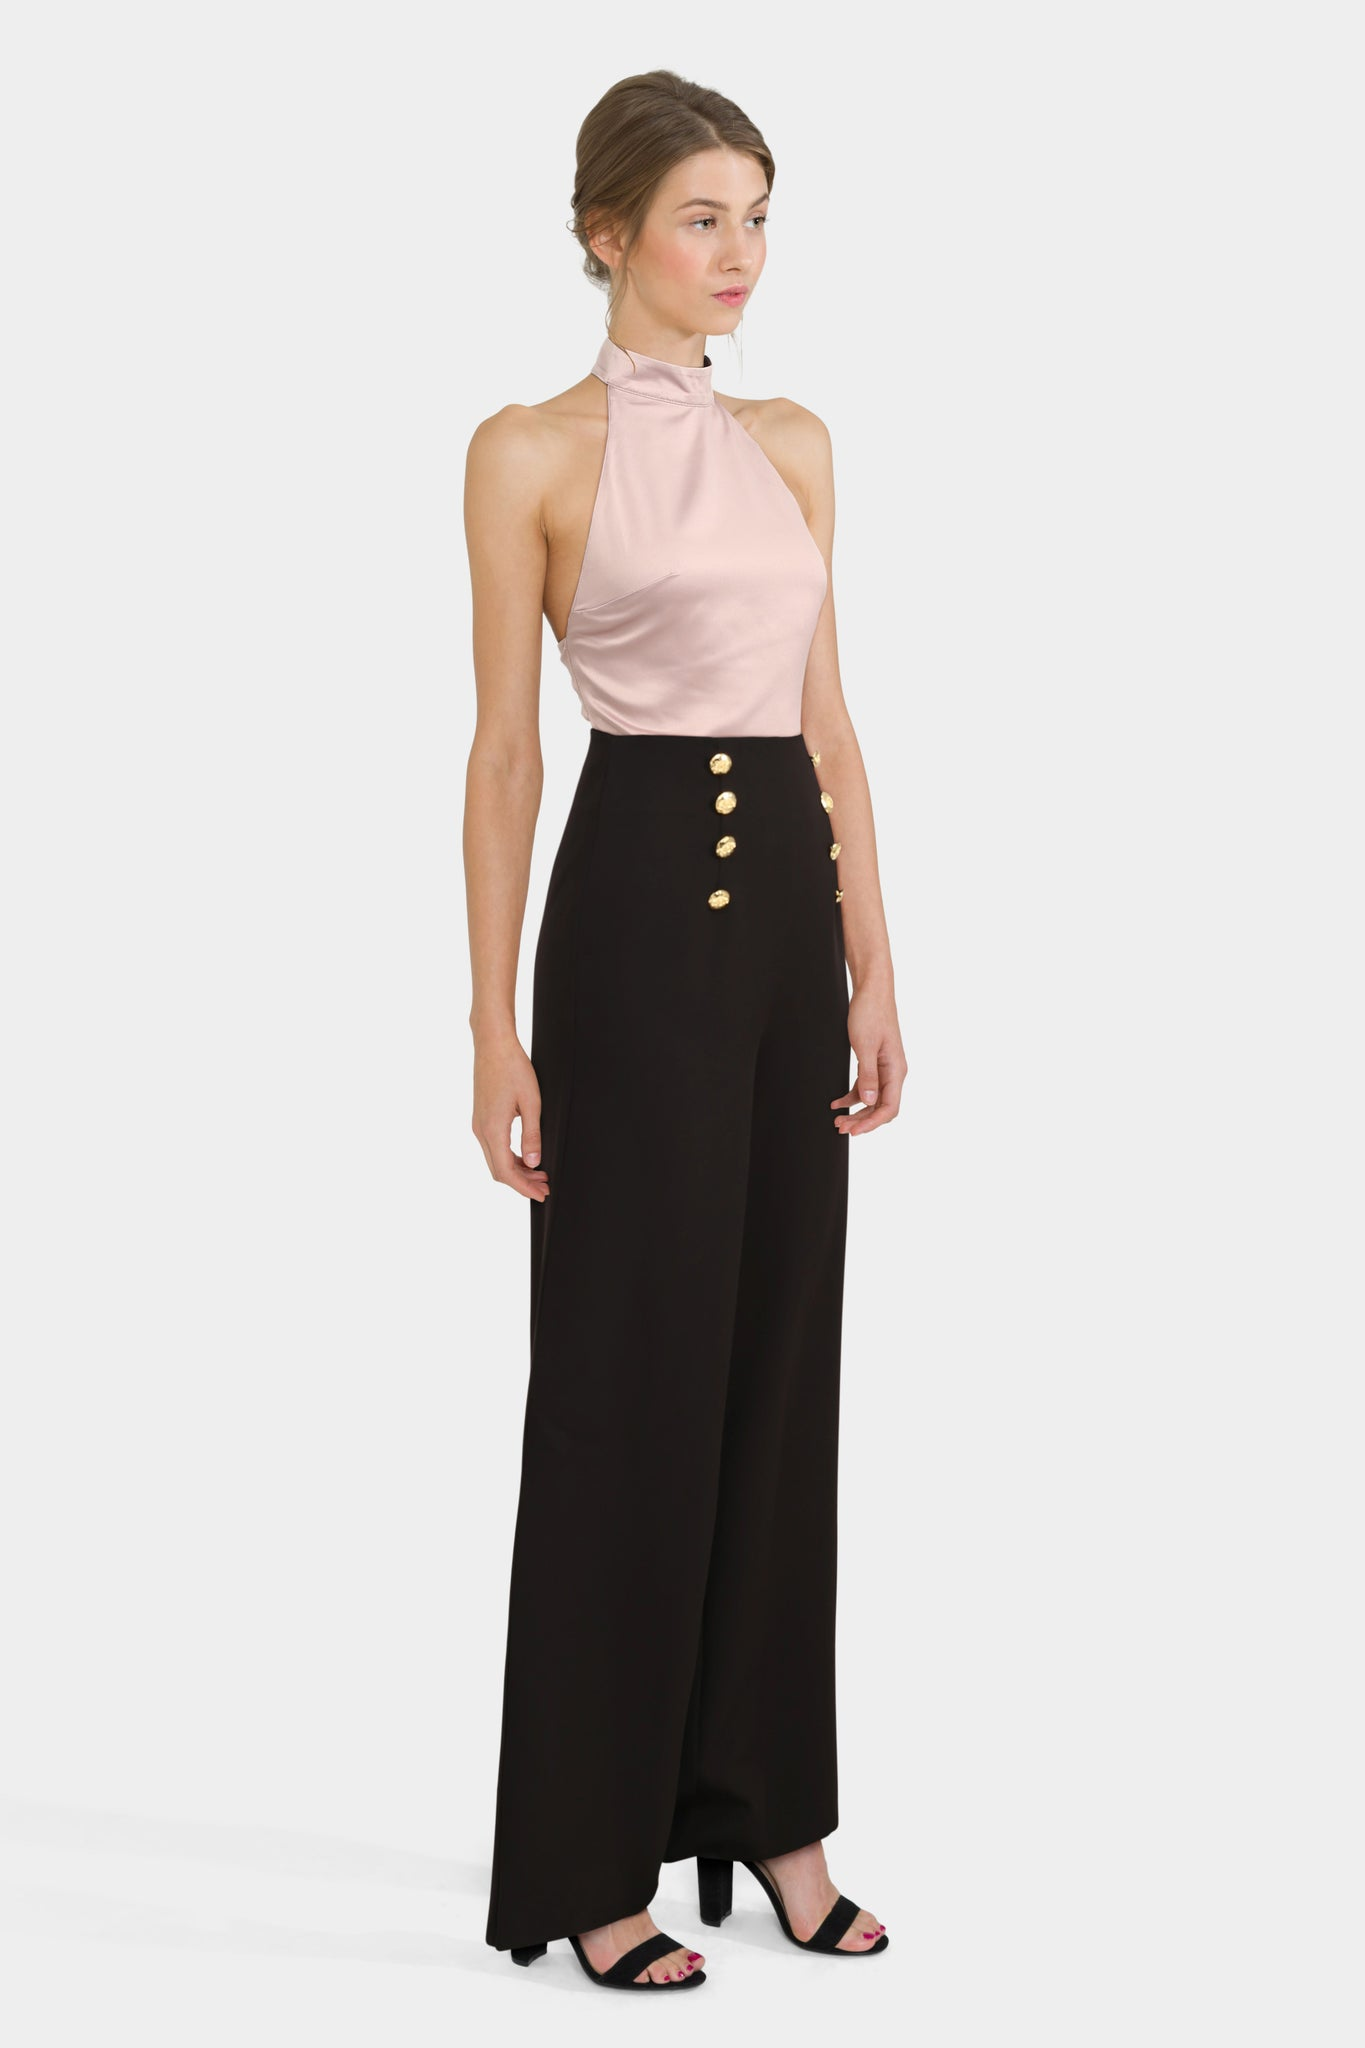 Wide Leg Trousers With Satin Halter Neck Top